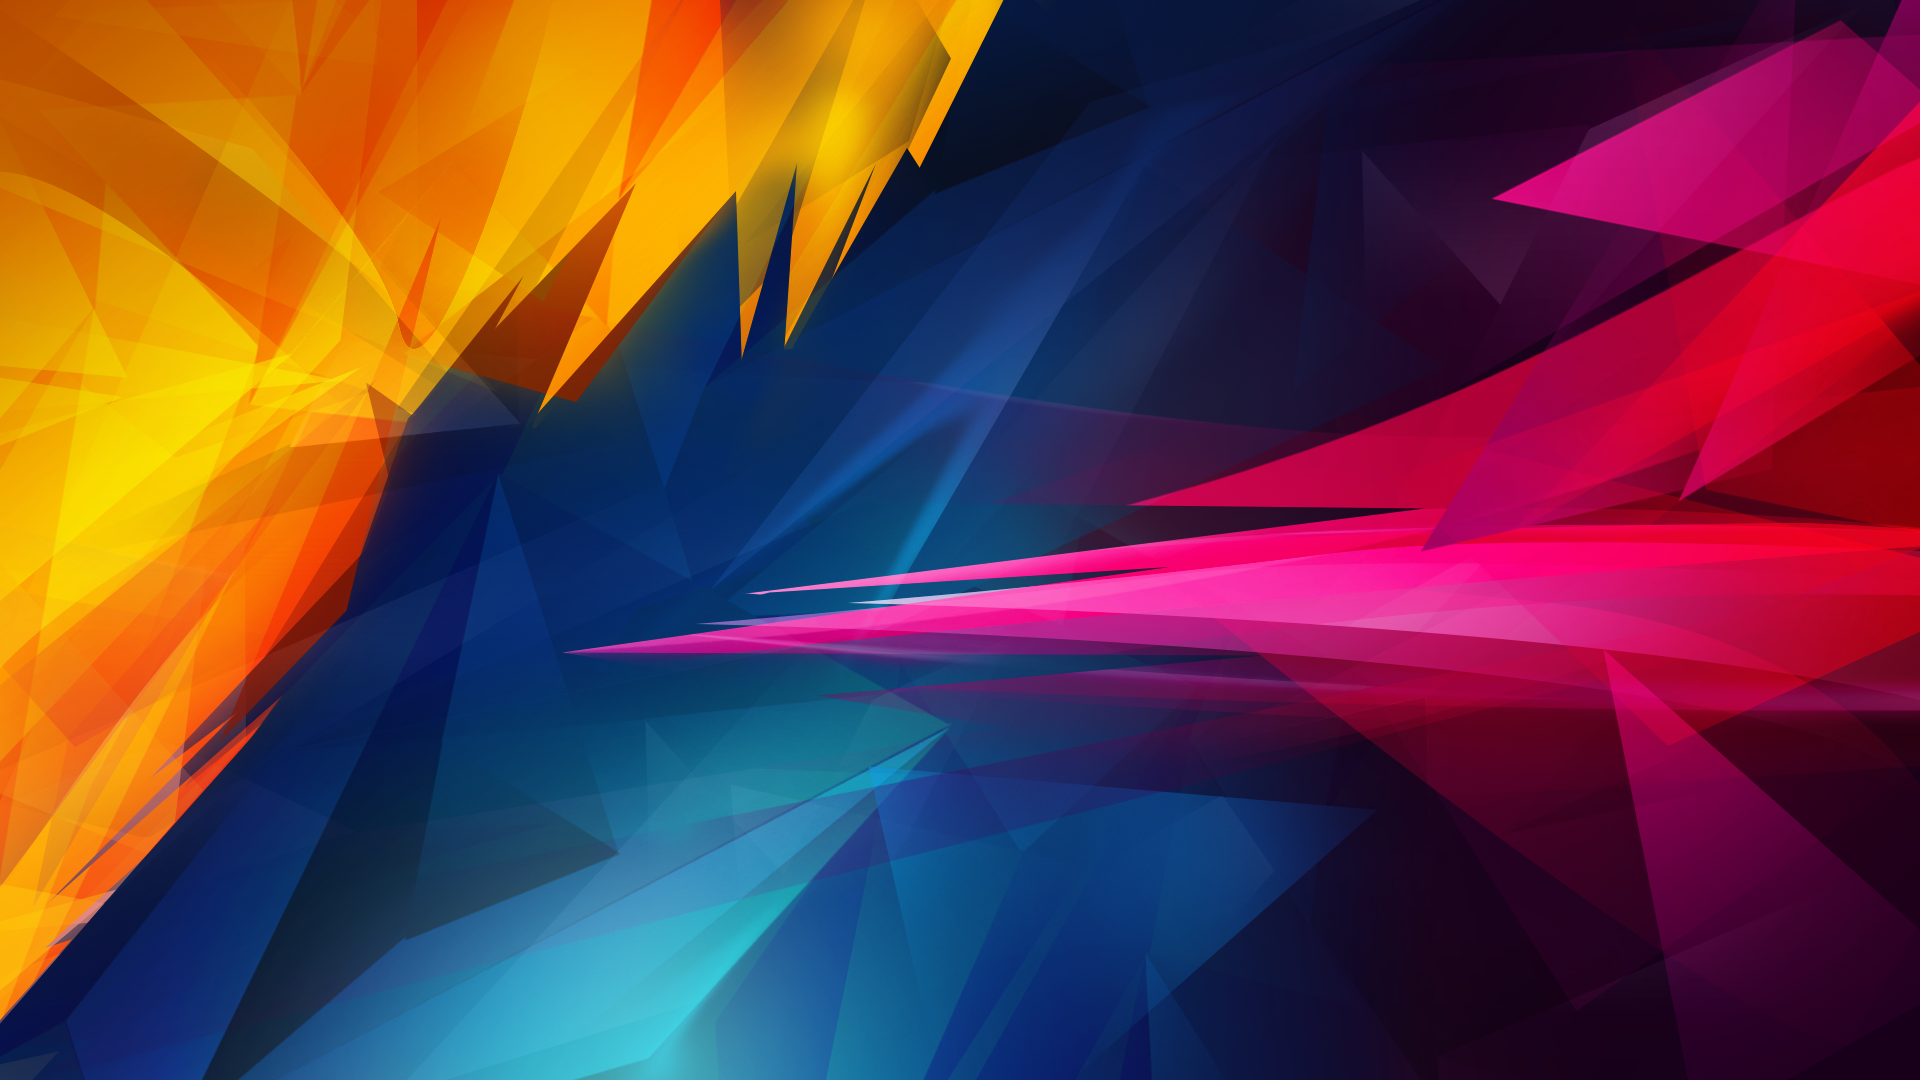 Abstract Hd Wallpapers 1080p Wallpapersafari